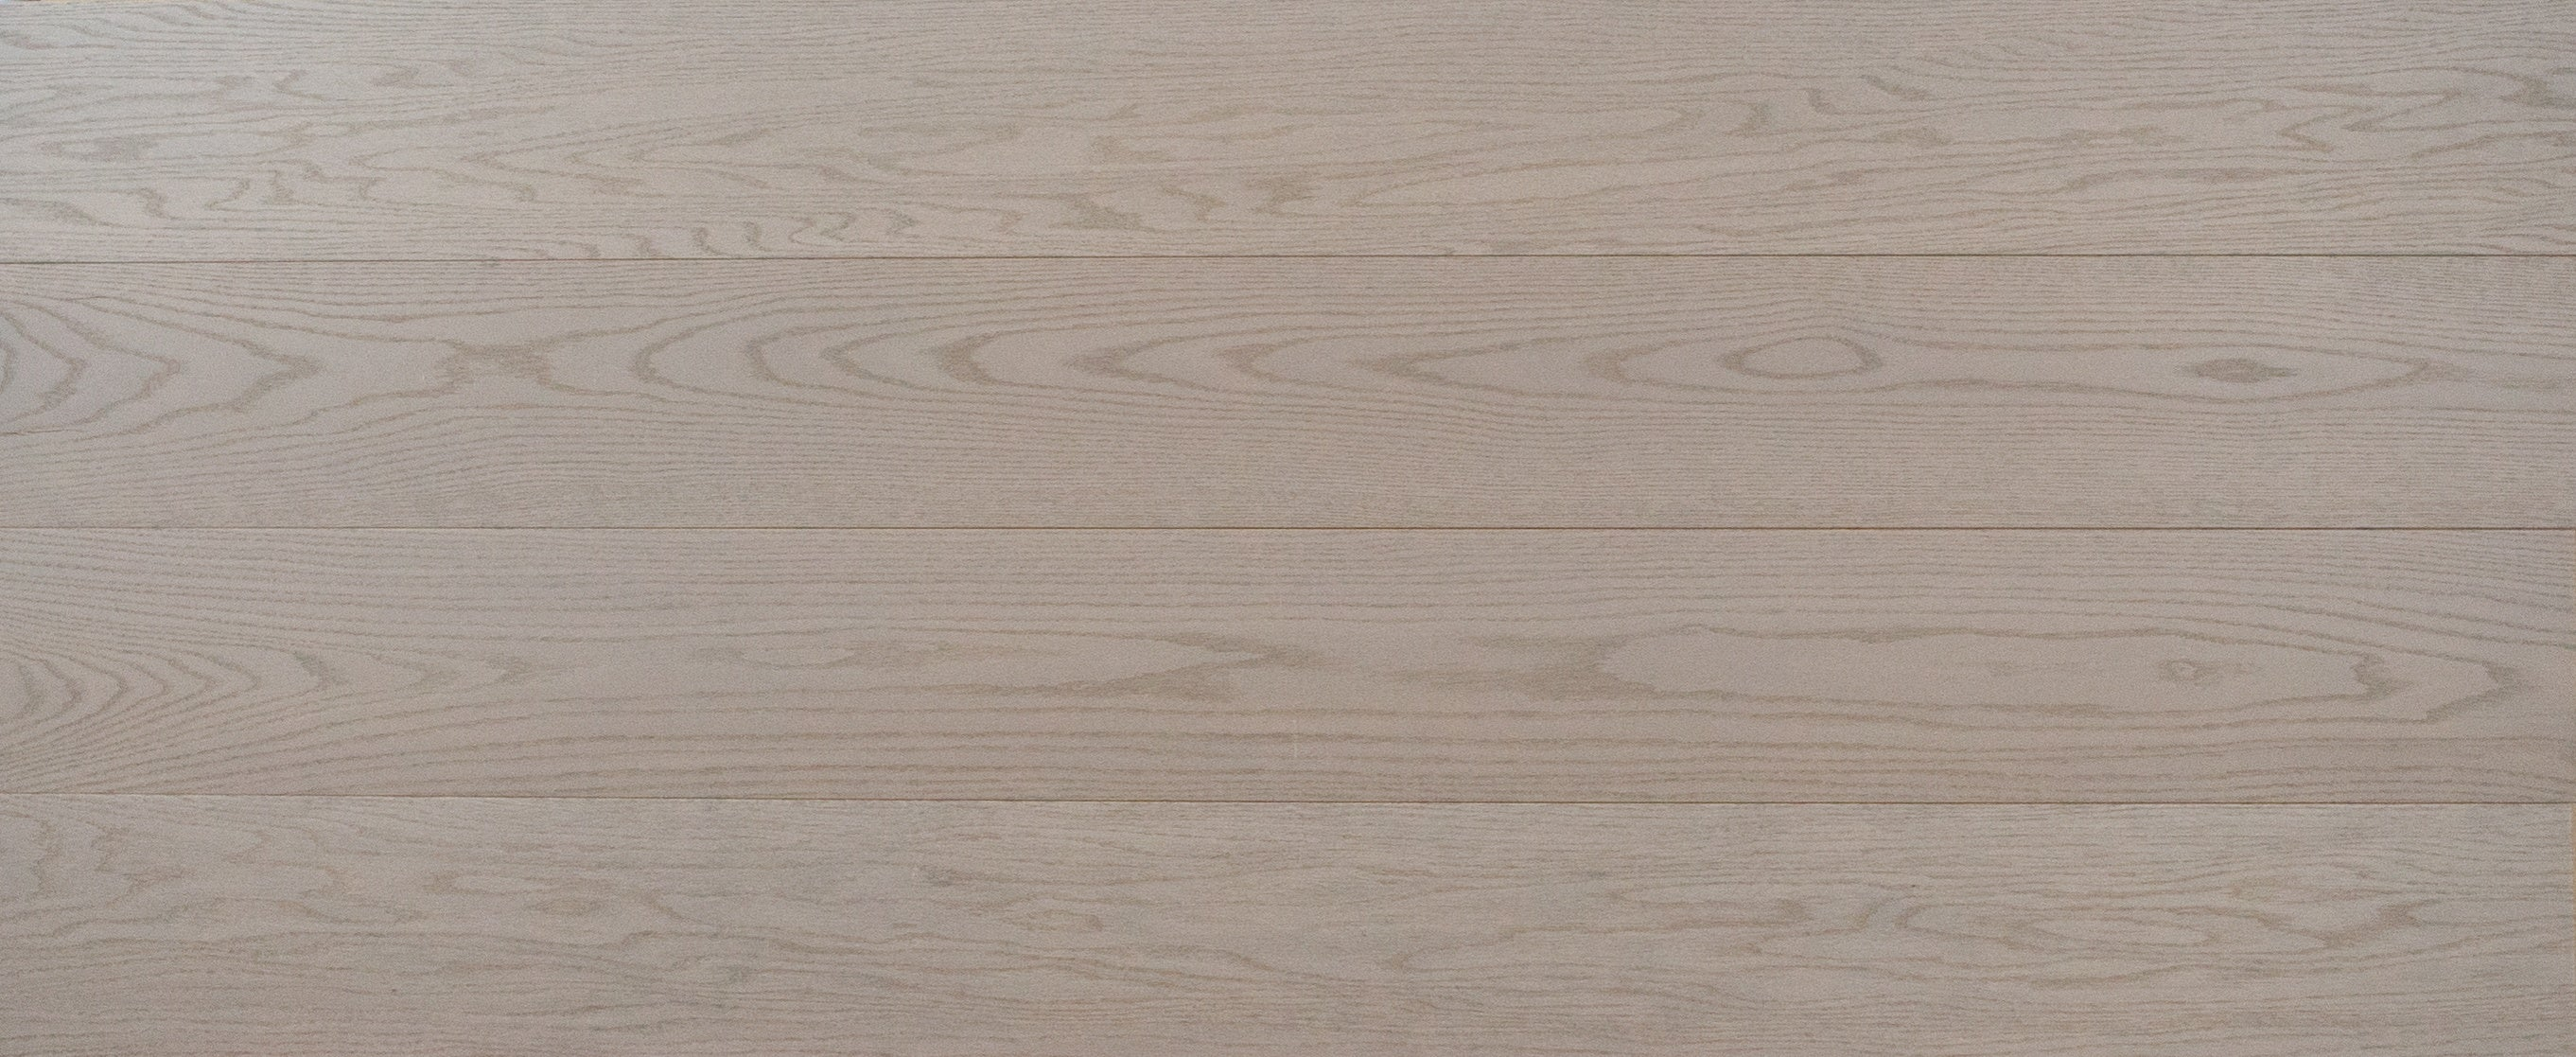 Light Brushed Taupe oiled Oak 190mm Wide